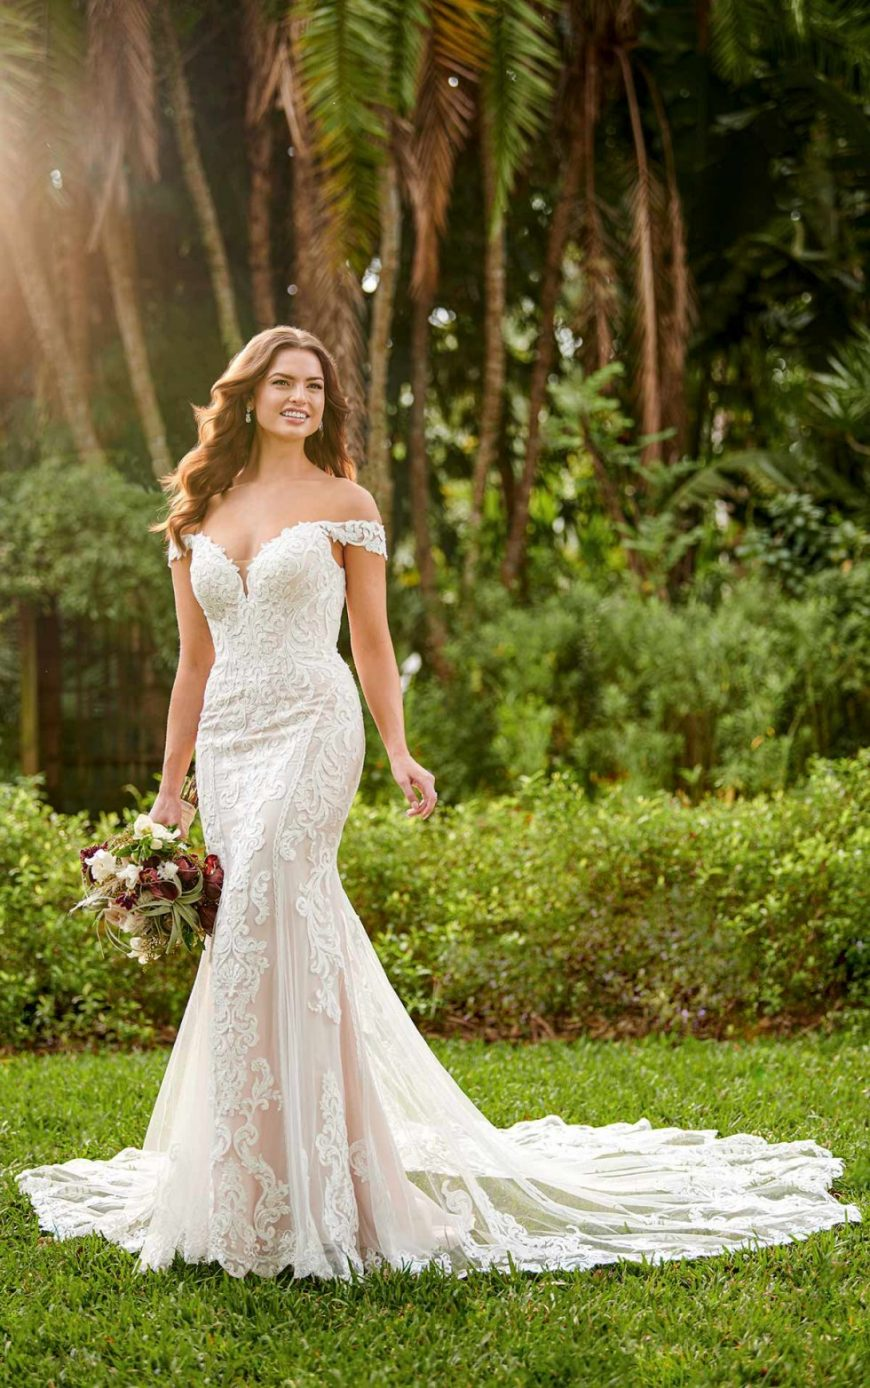 Miriam Wedding Dress Lace Slimline Fit and Flare Off-Shoulder Tuscany Bridal D3114 Essense of Australia